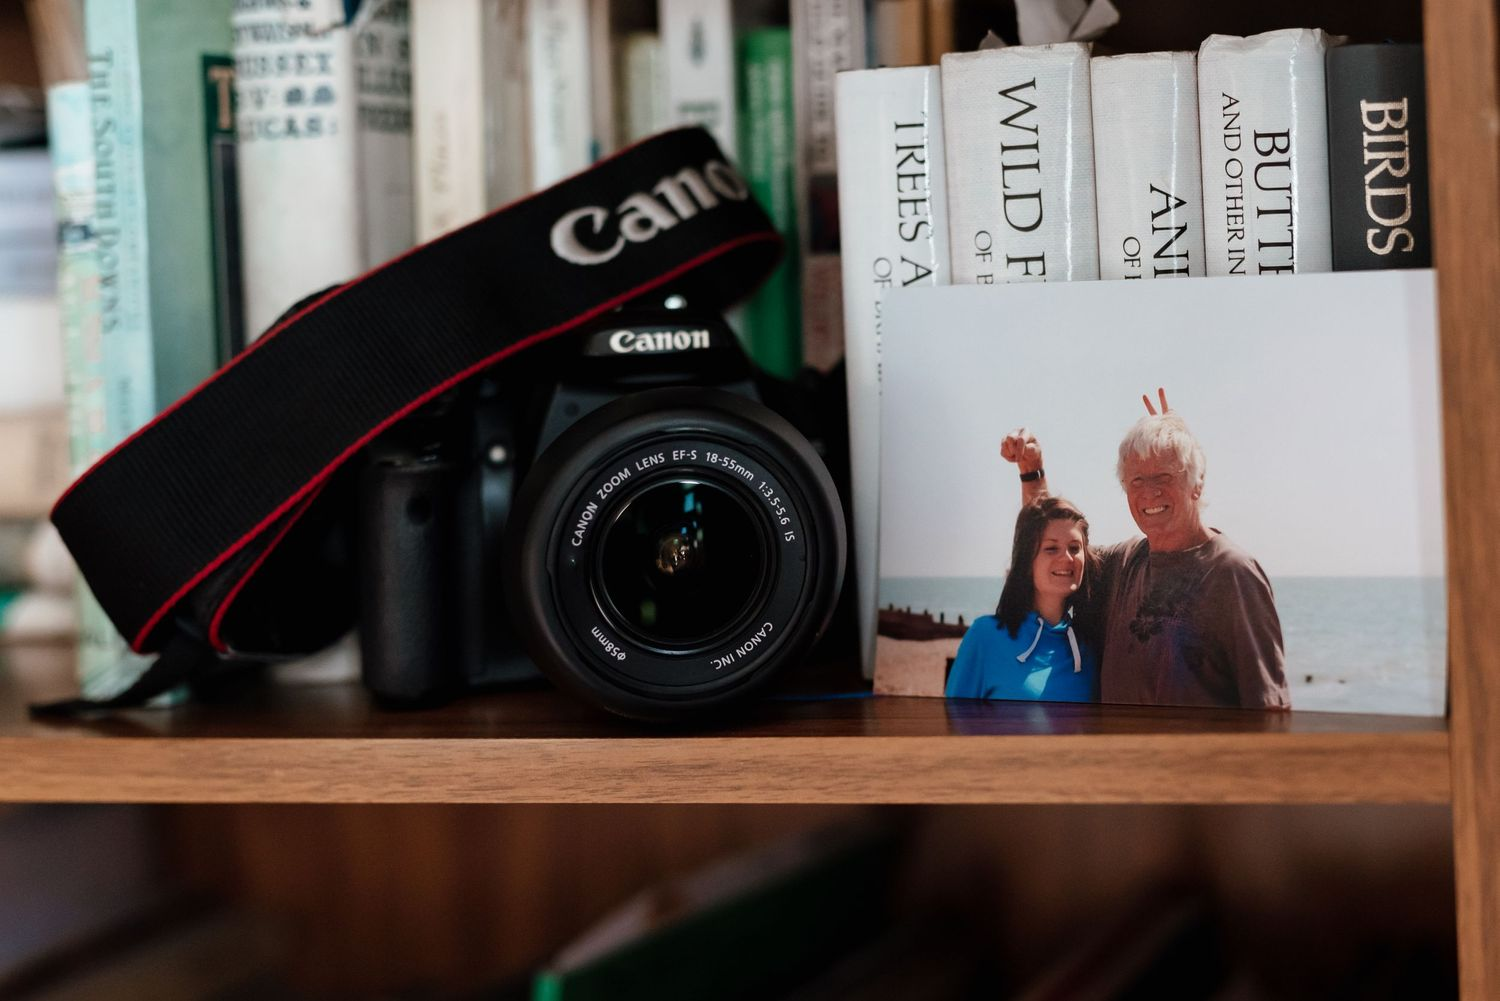 Canon camera on wooden book shelf